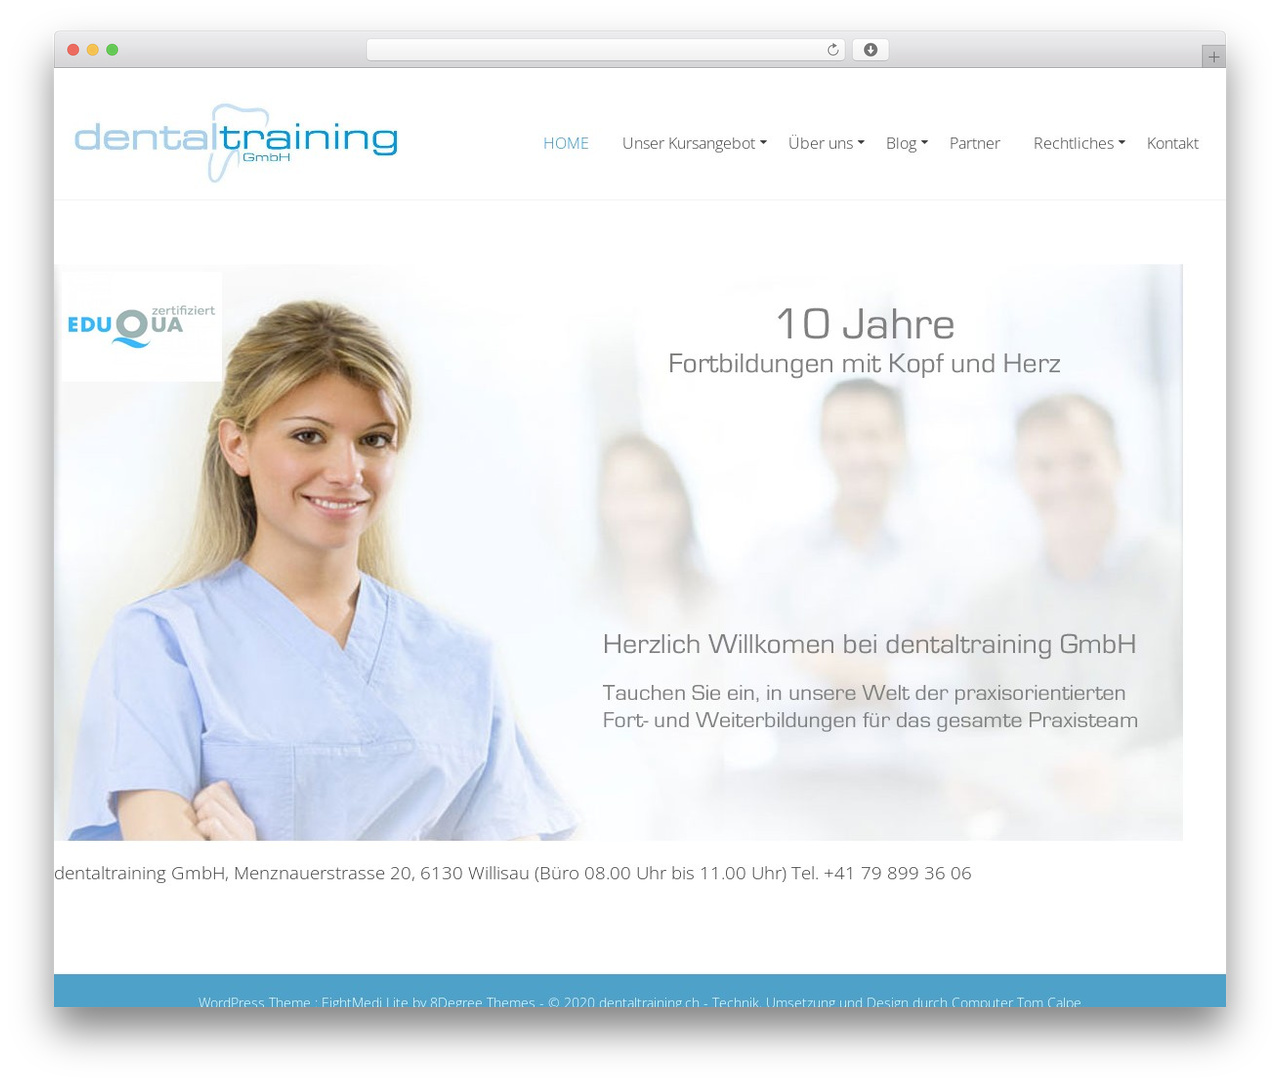 Eightmedi Lite best free WordPress theme - dentaltraining.ch